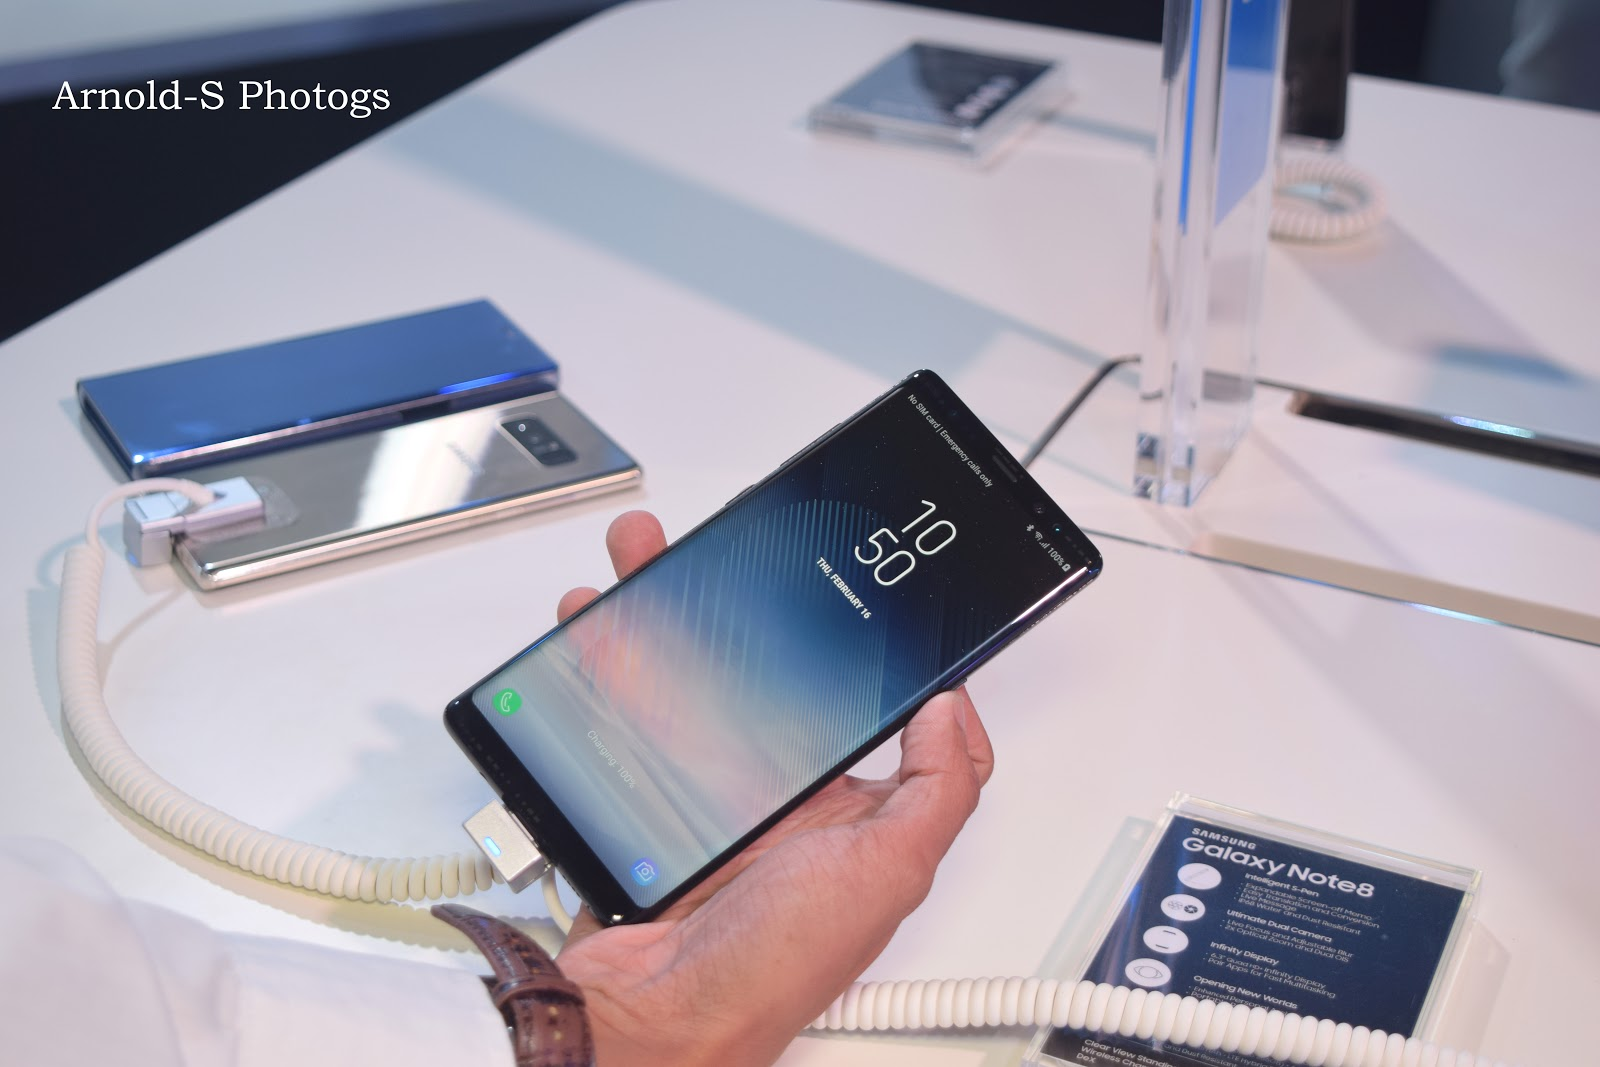 Samsung Galaxy NOTE8 Officially Unveiled In The Philippines